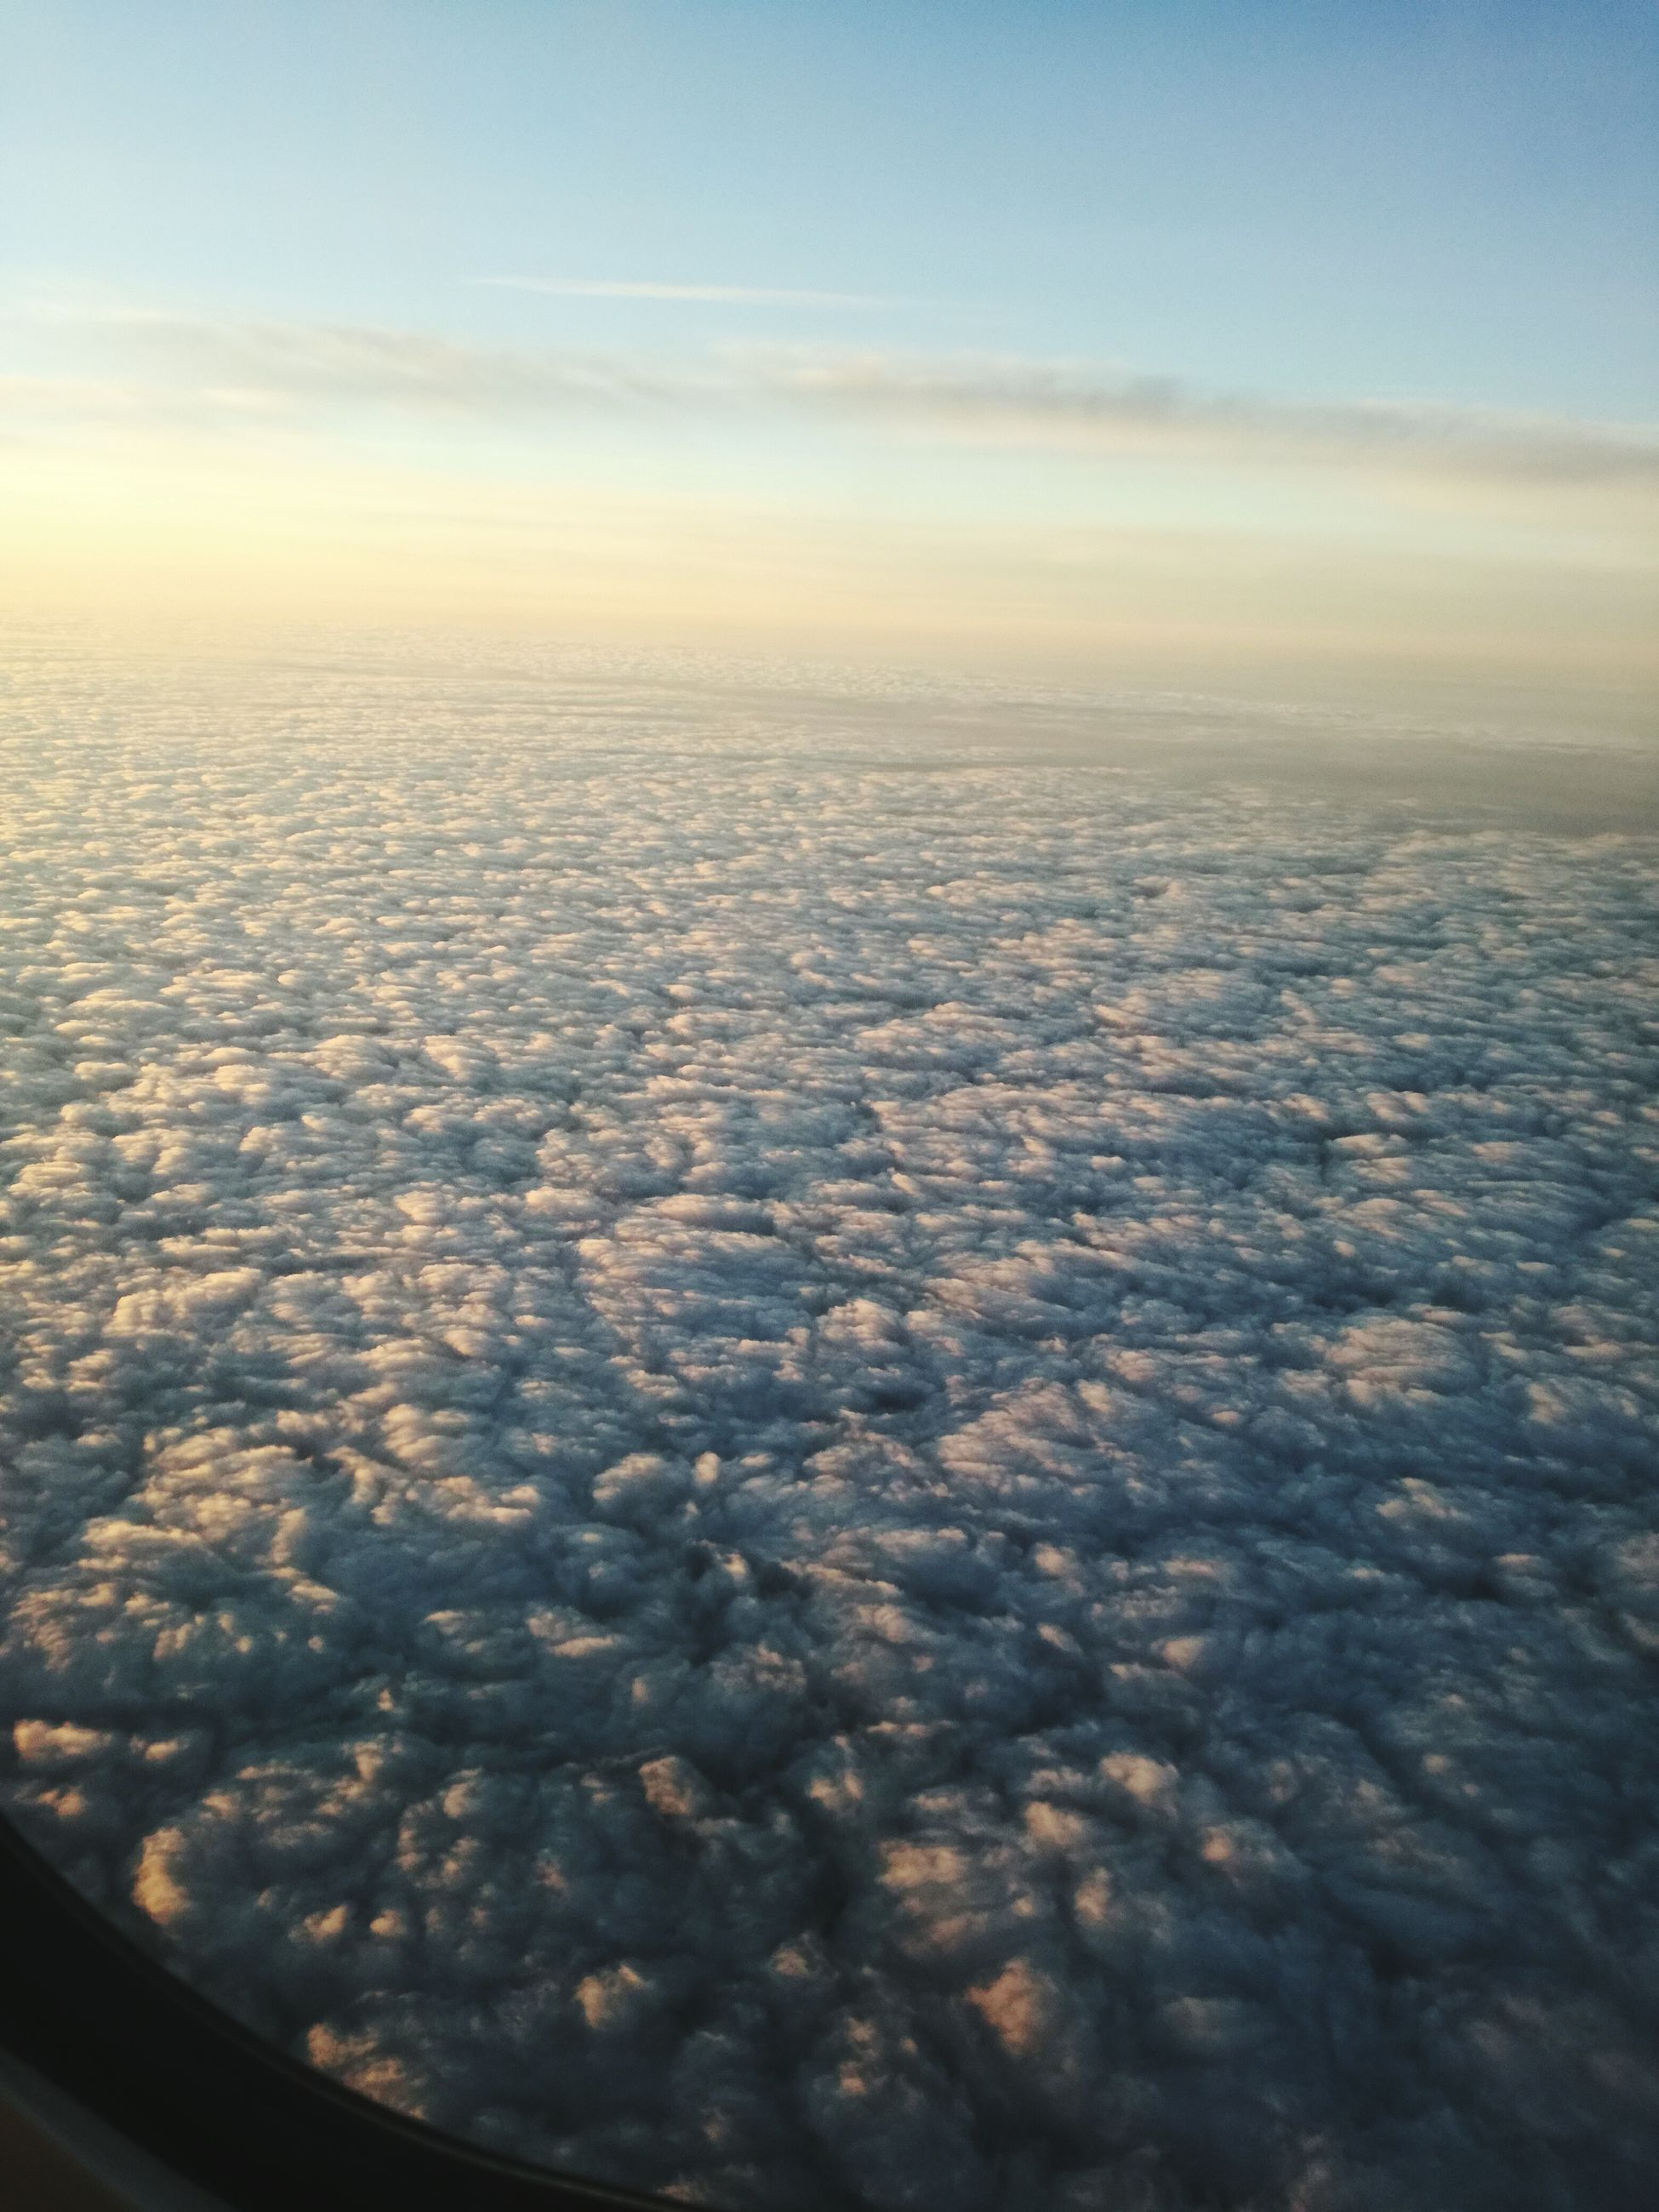 aerial view, nature, beauty in nature, scenics, sky, sunset, airplane, tranquility, no people, outdoors, tranquil scene, landscape, air vehicle, day, airplane wing